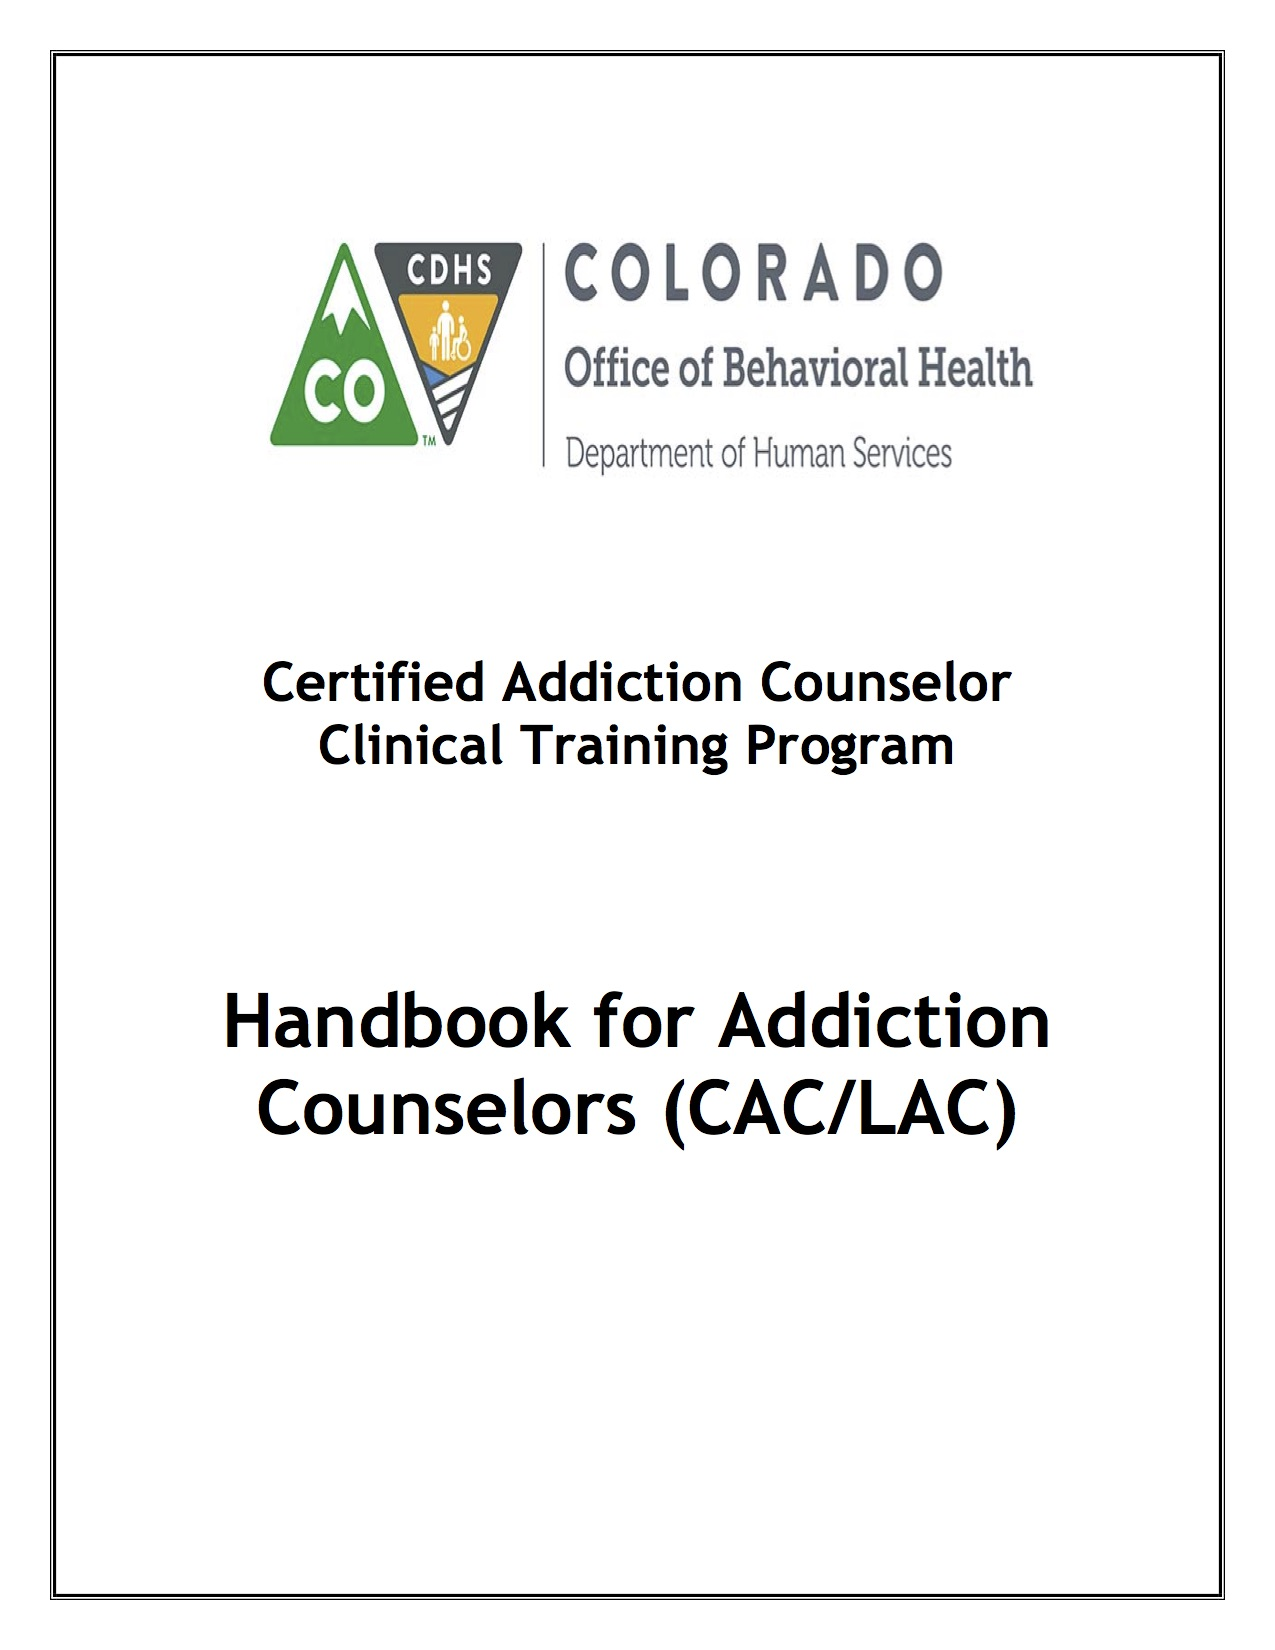 Handbook Cover of OBH Handbook for Addiction Counselors 0715